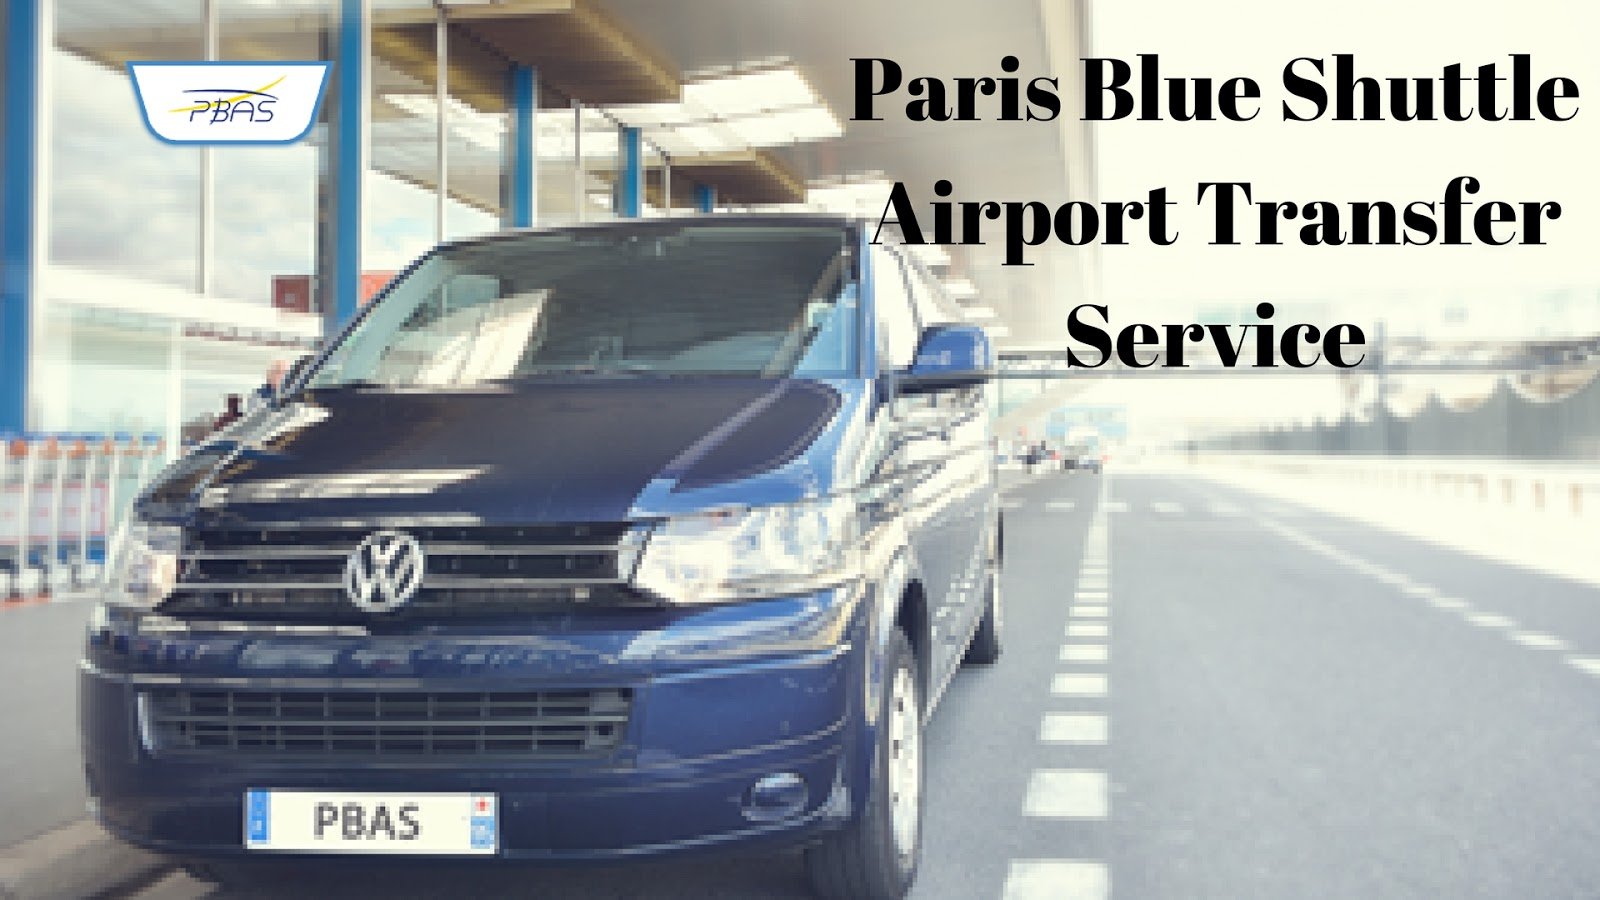 paris airport shuttle services. Black Bedroom Furniture Sets. Home Design Ideas